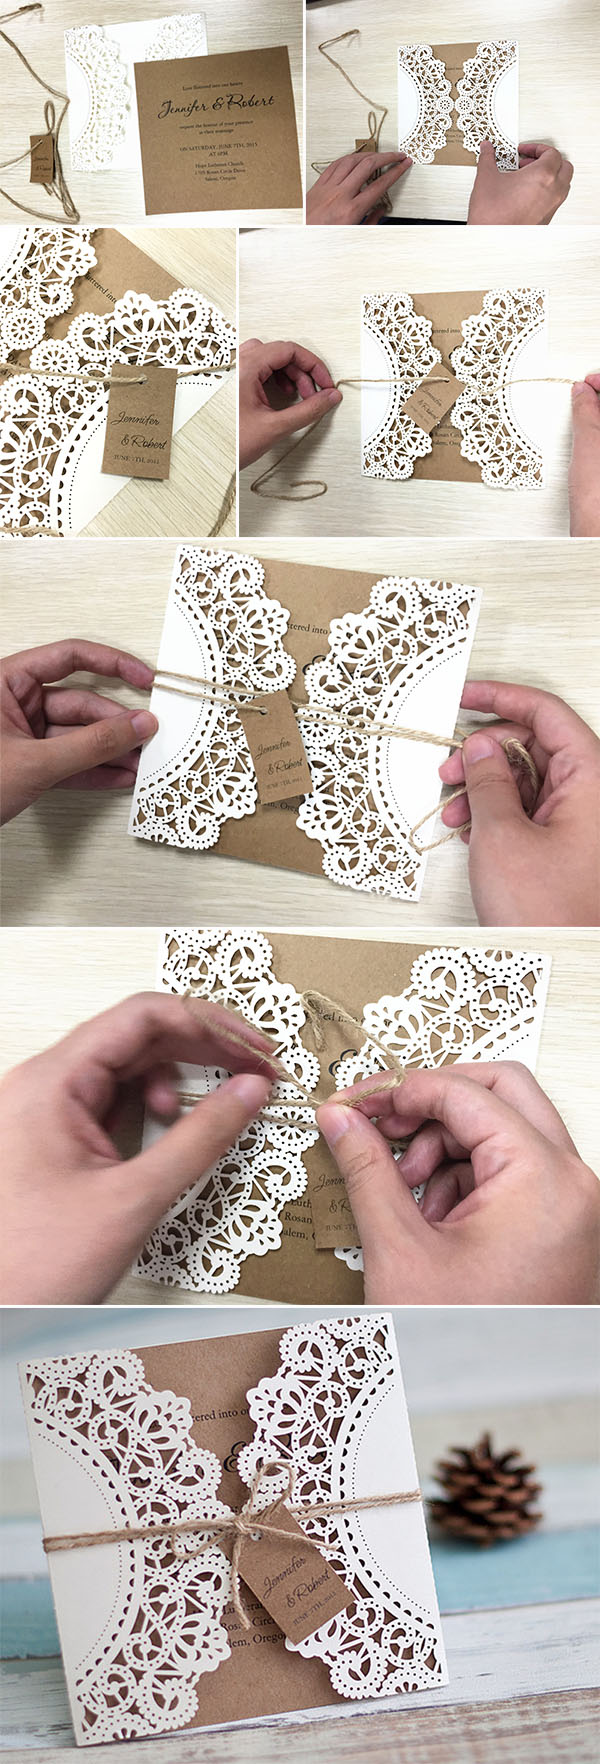 diy lace and burlap laser cut rustic wedding invitations for country wedding ideas